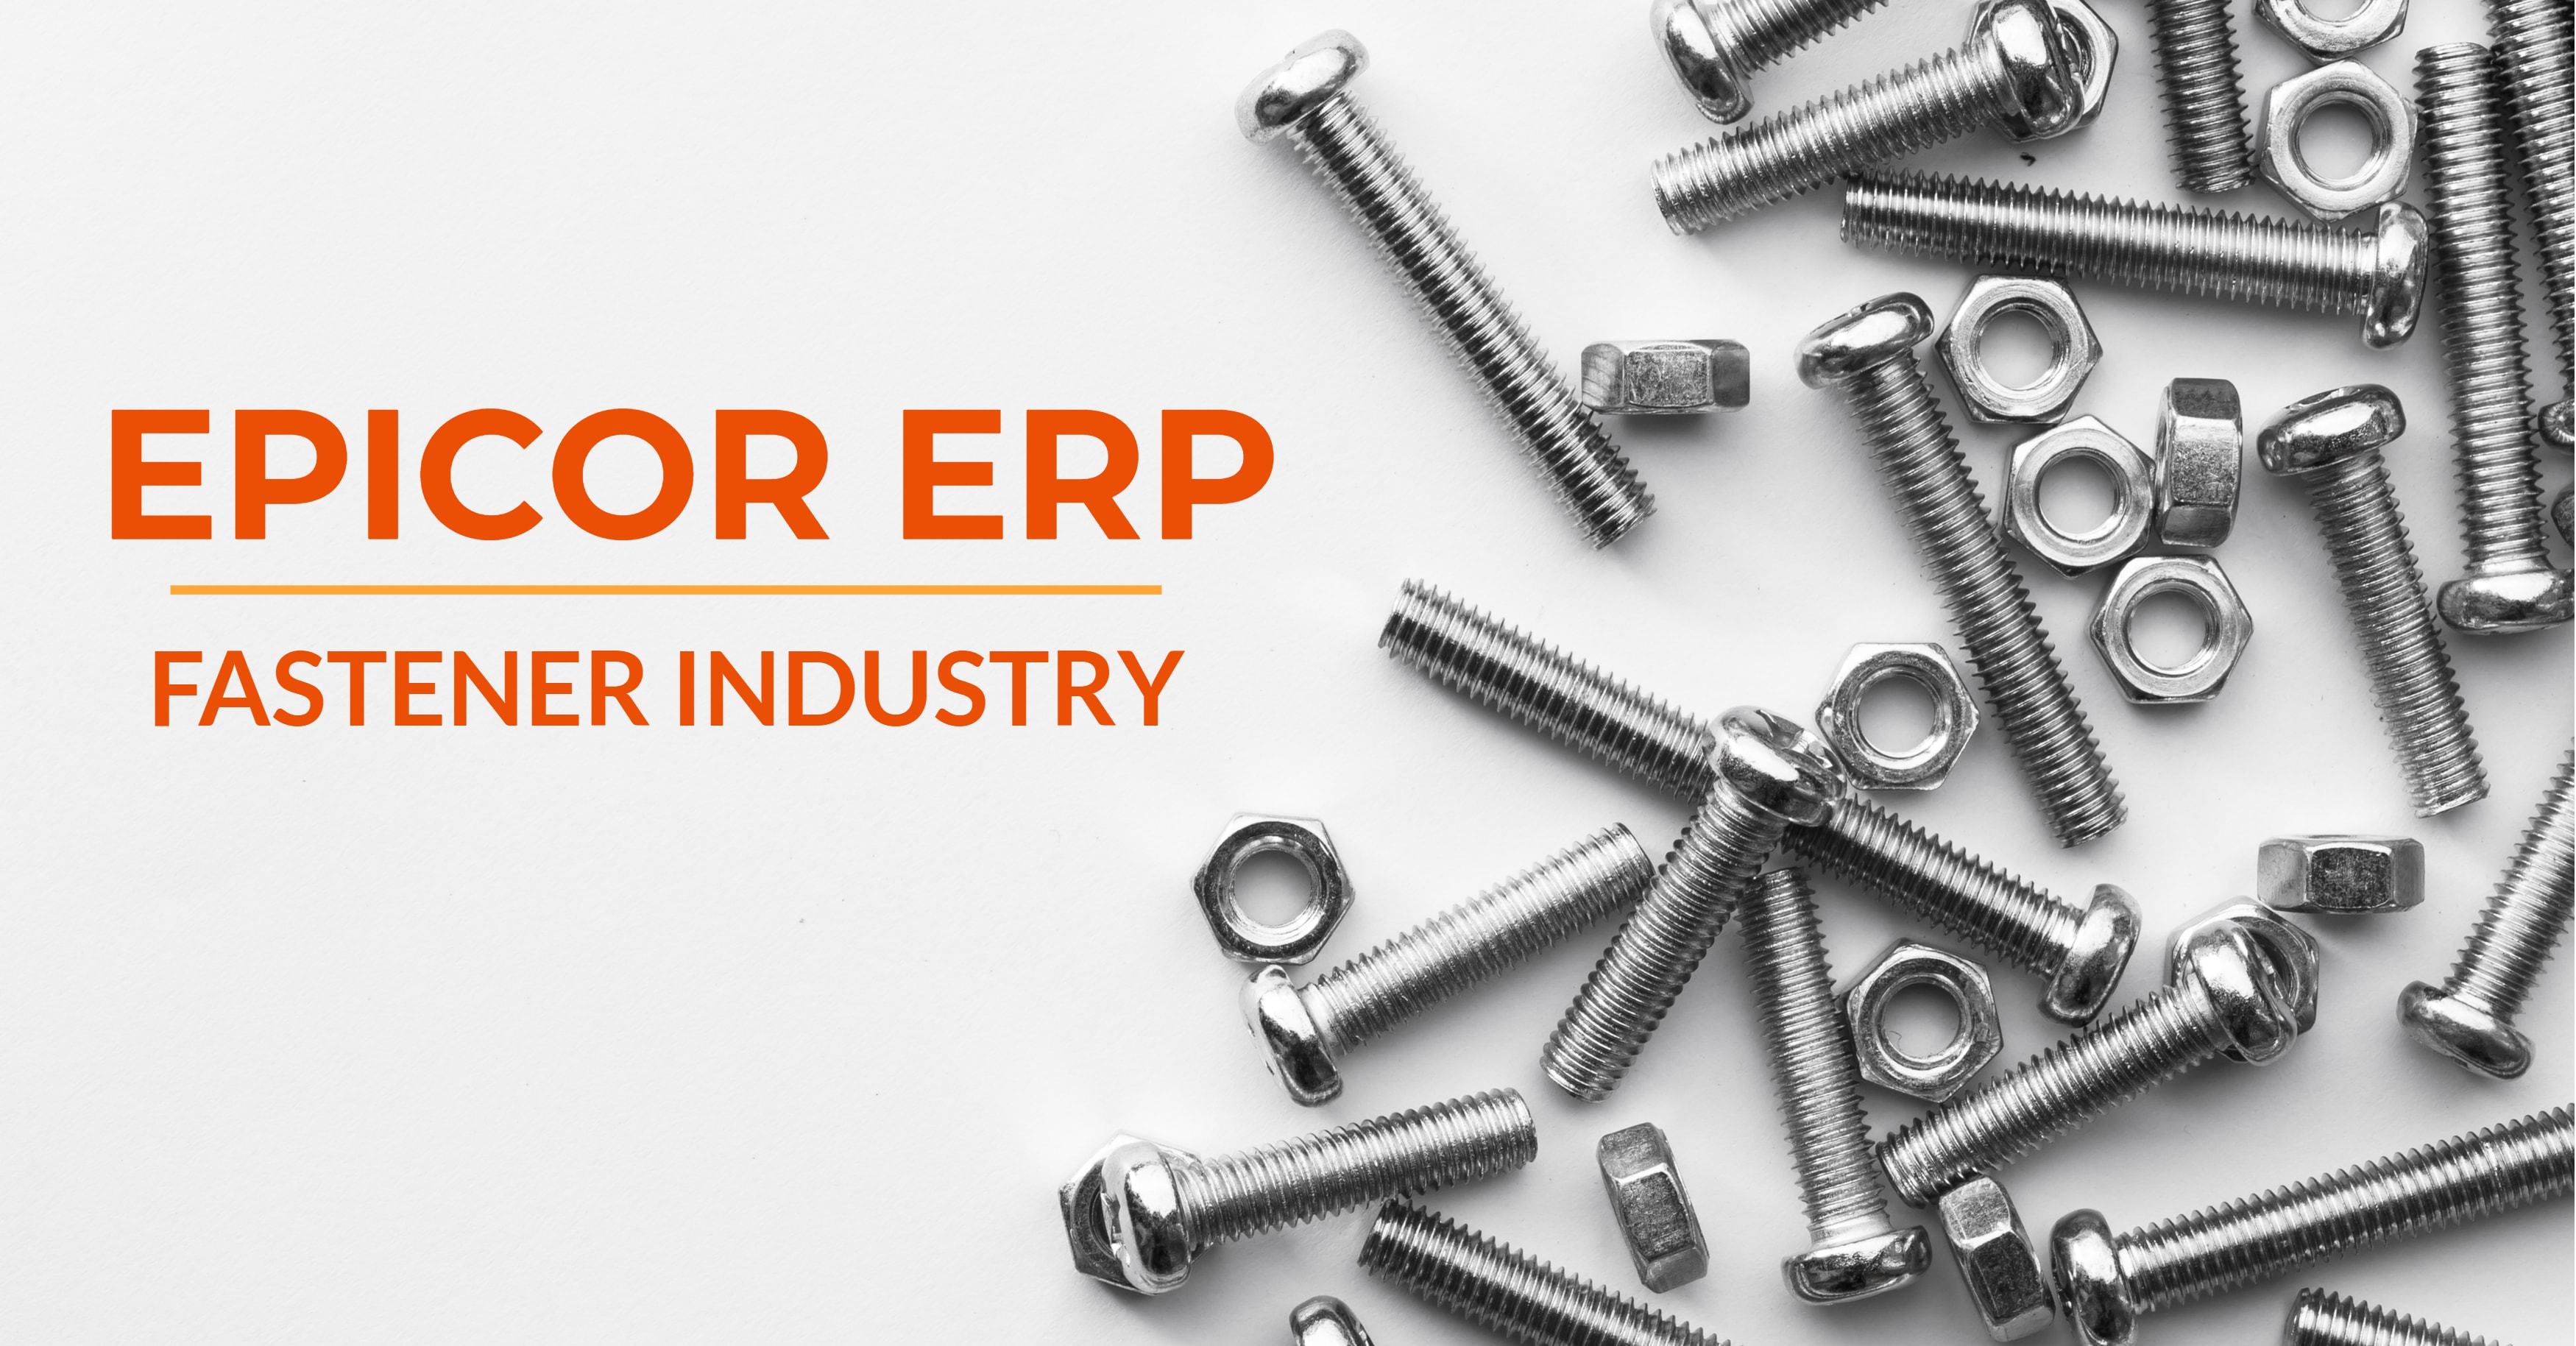 How Does ERP Software Support the Fastener Industry?